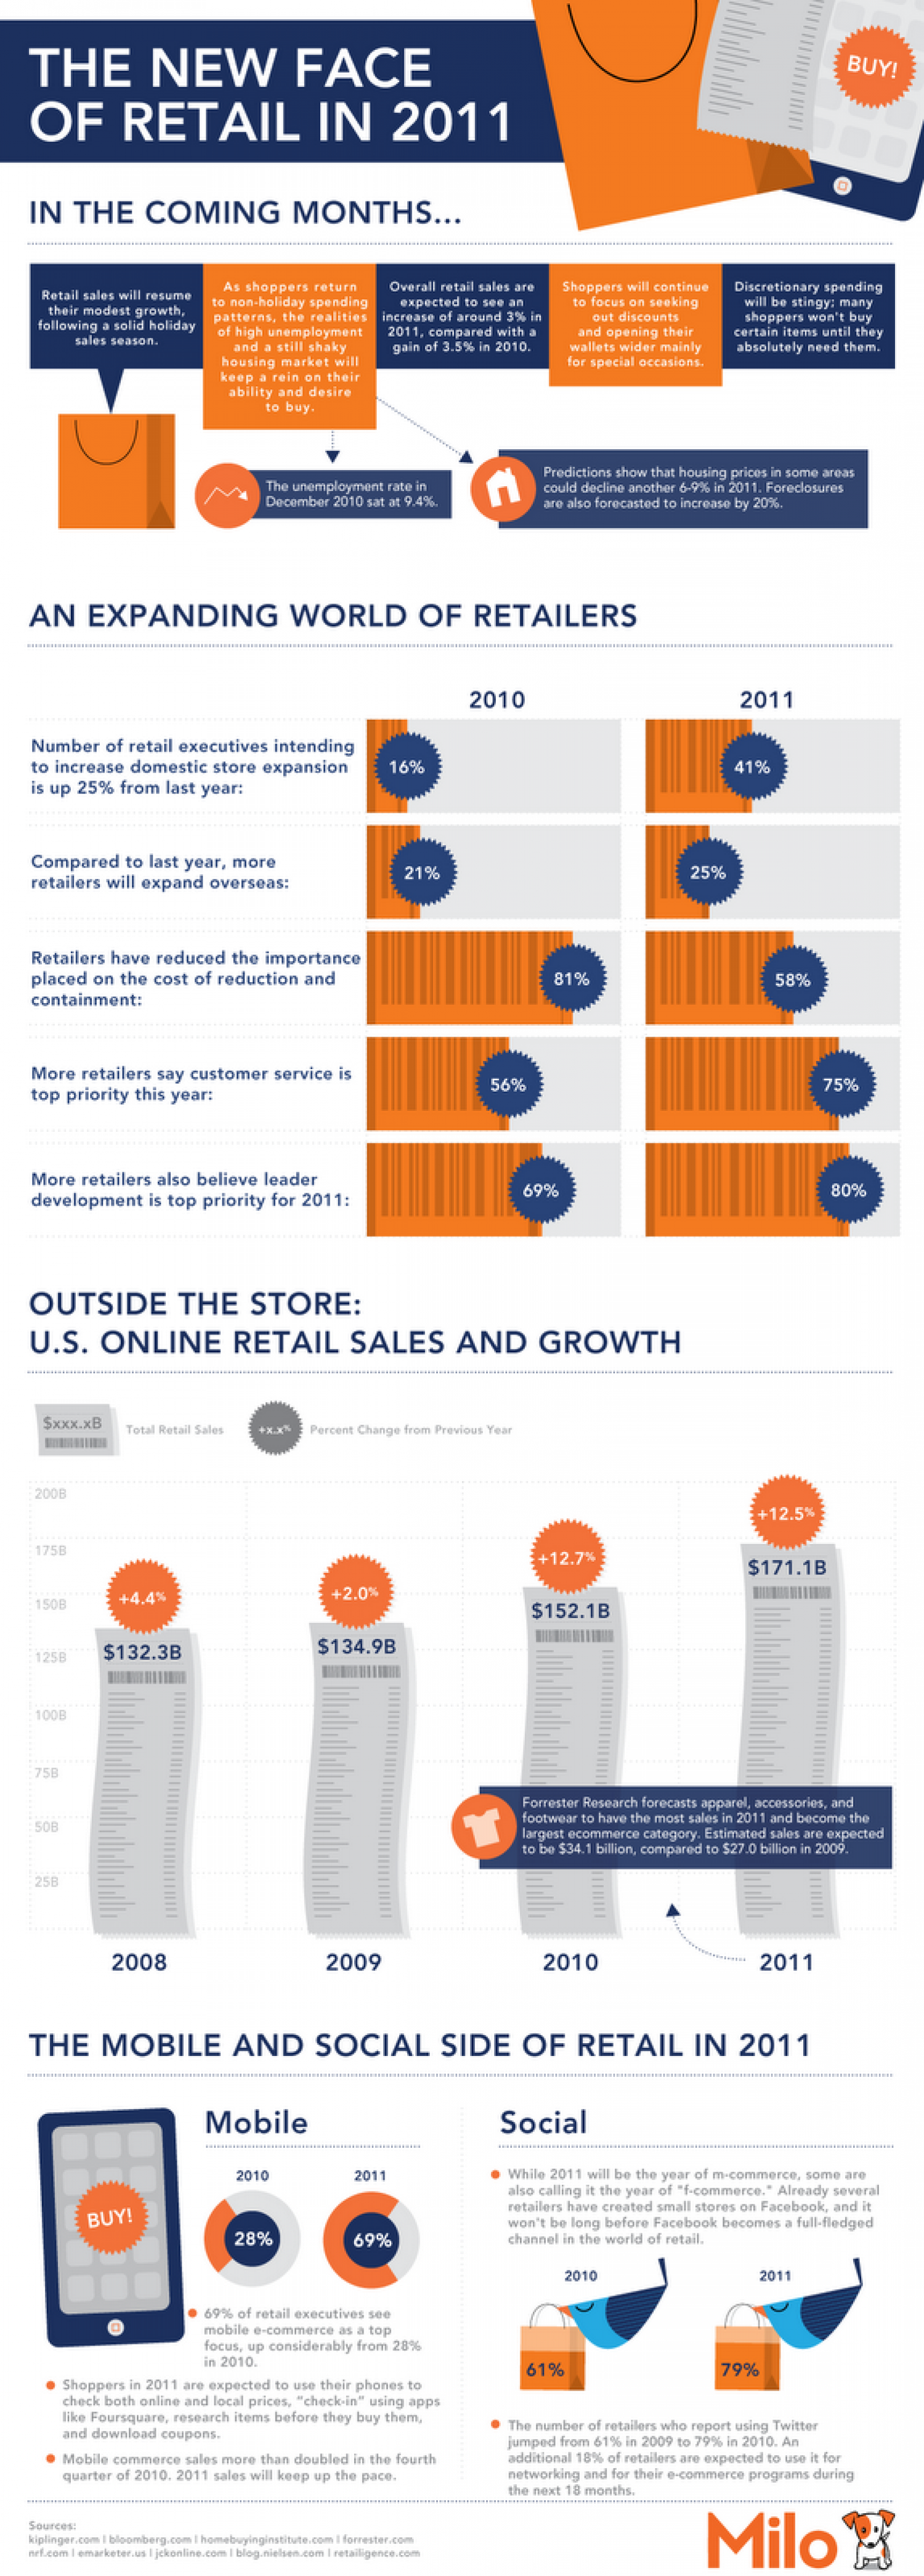 The New Face of Retail in 2011 Infographic